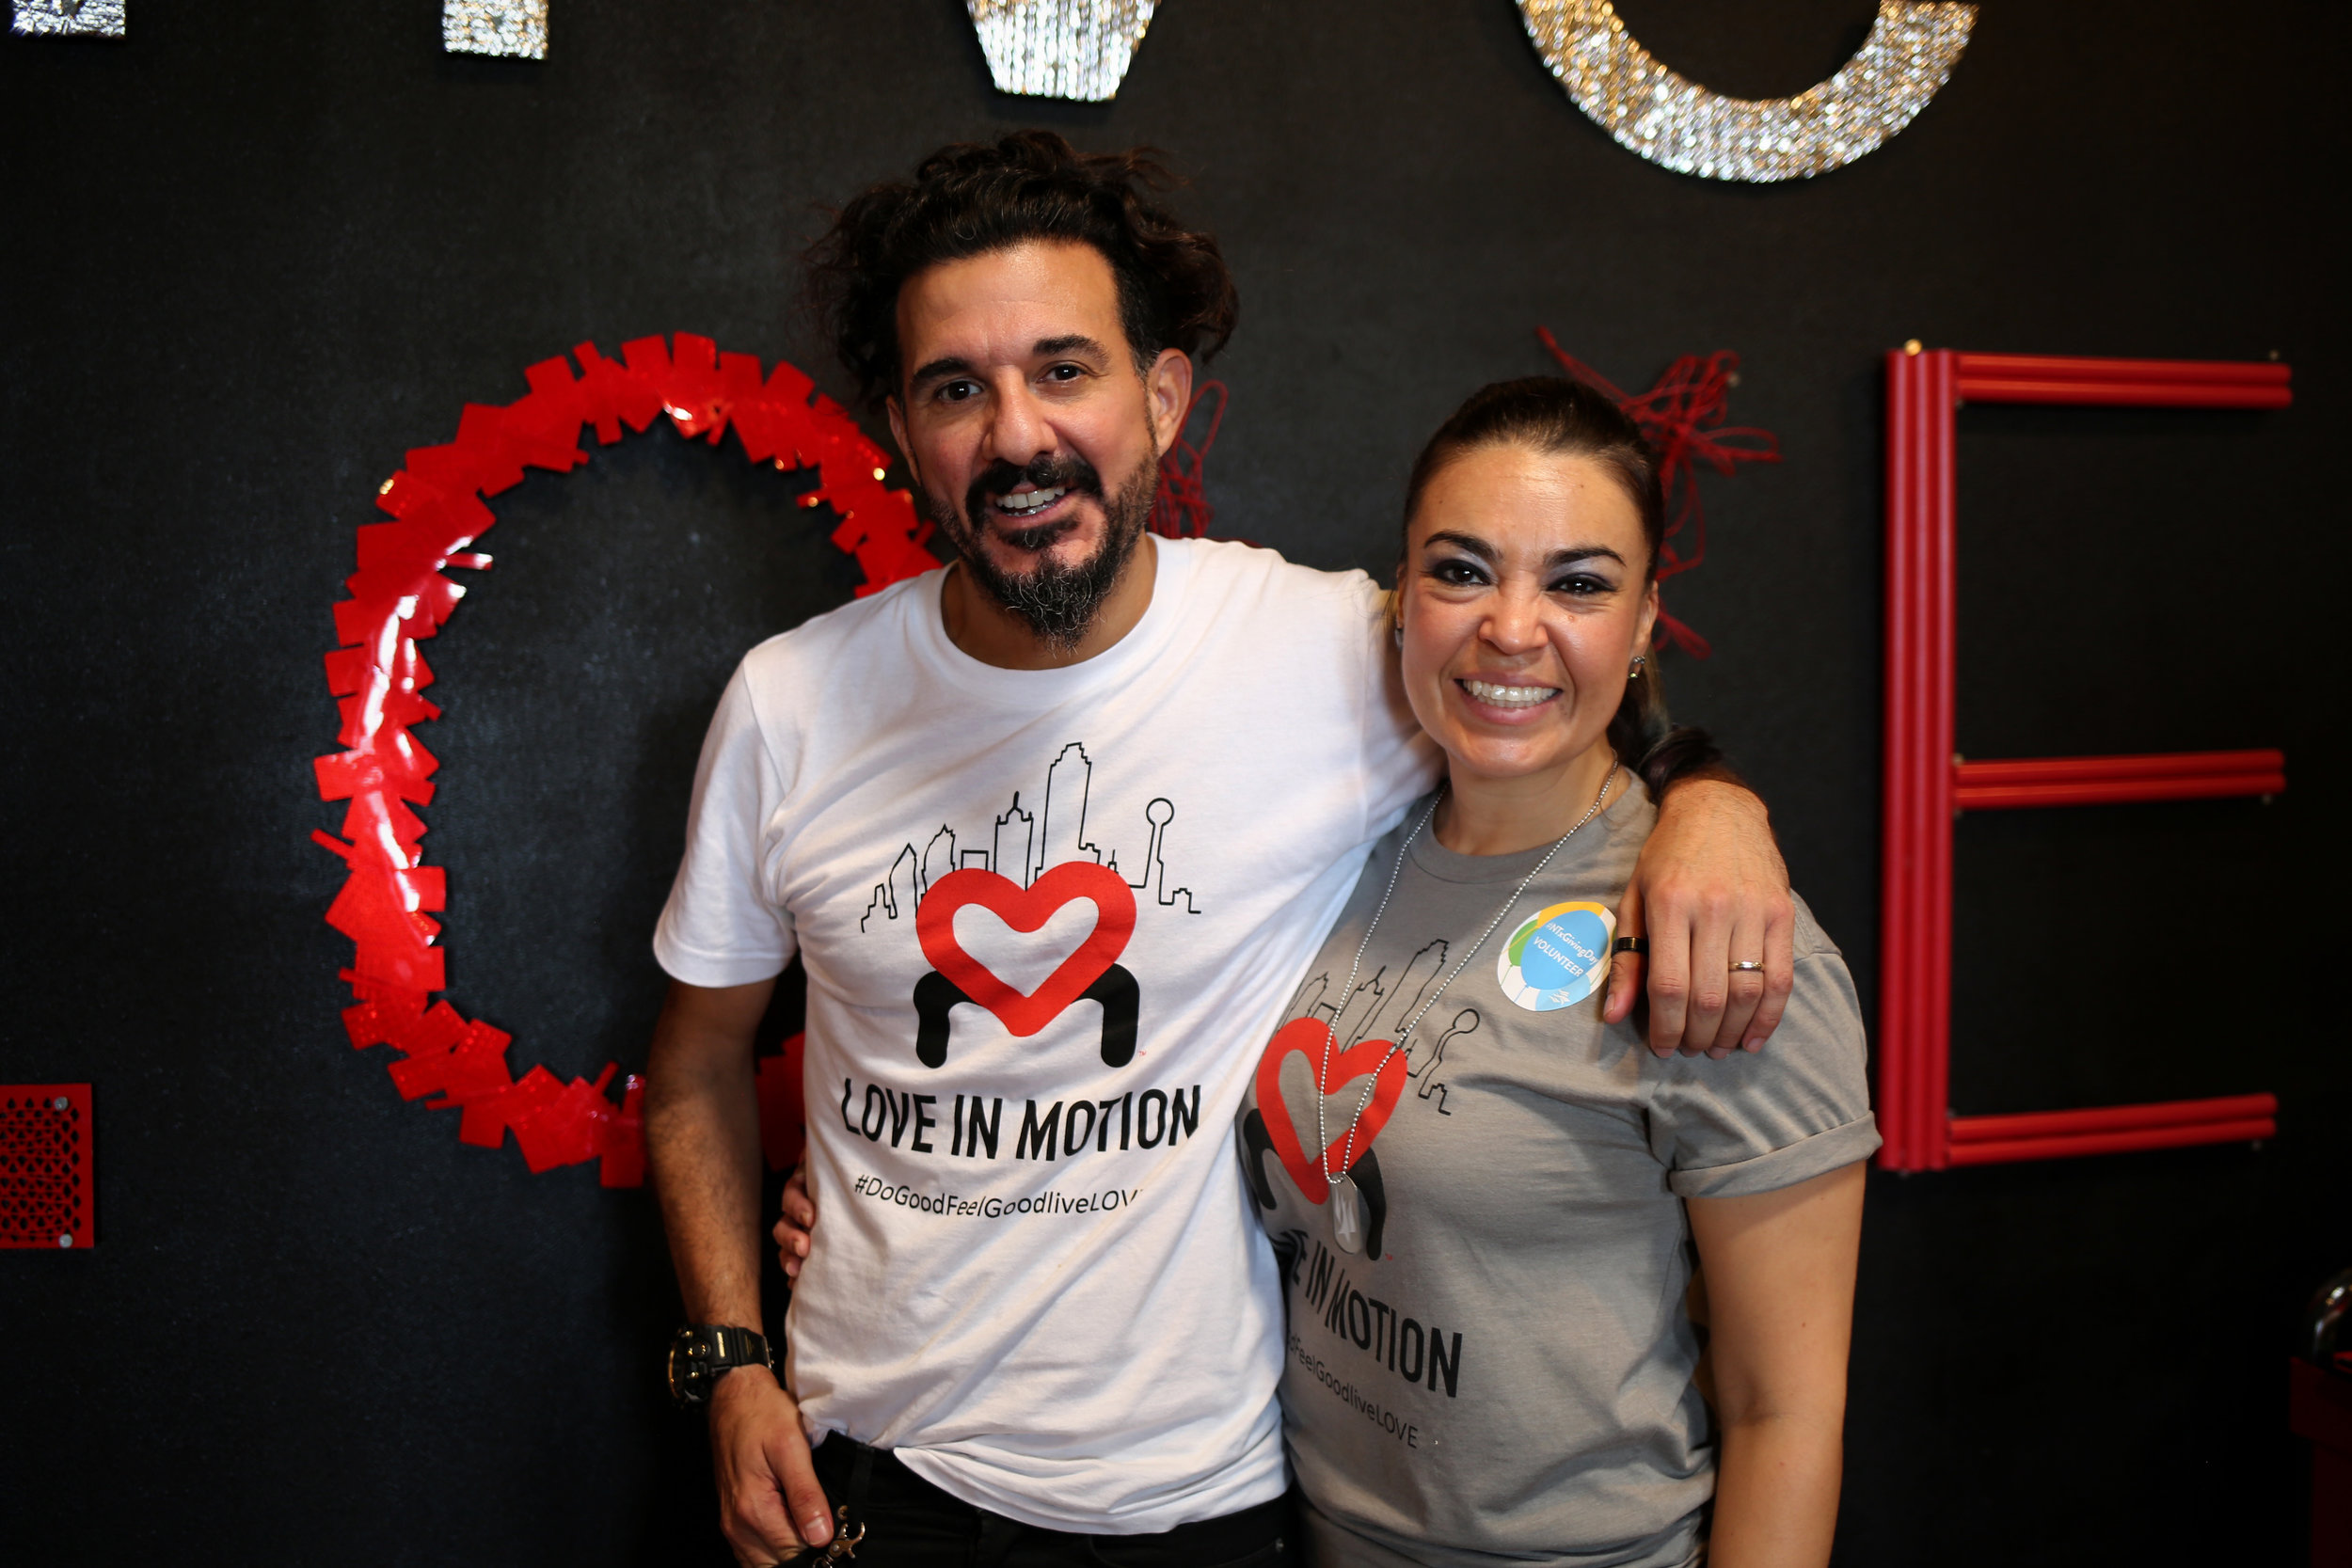 Pollo and wife, Polla, at the Love in Motion headquarters in Deep Ellum.